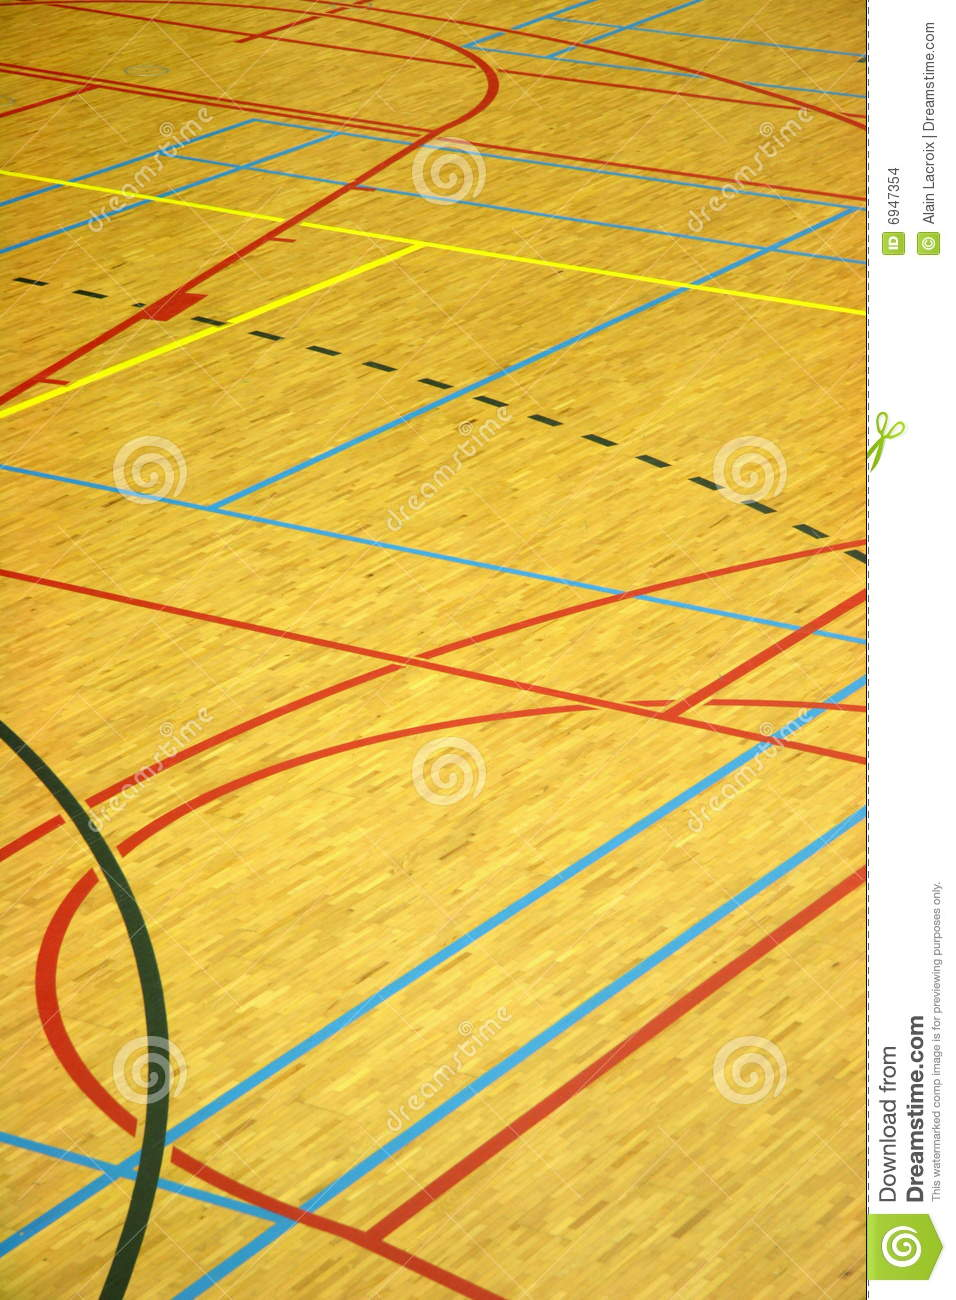 Download Sports lines stock photo. Image of corners, colors, bending - 6947354